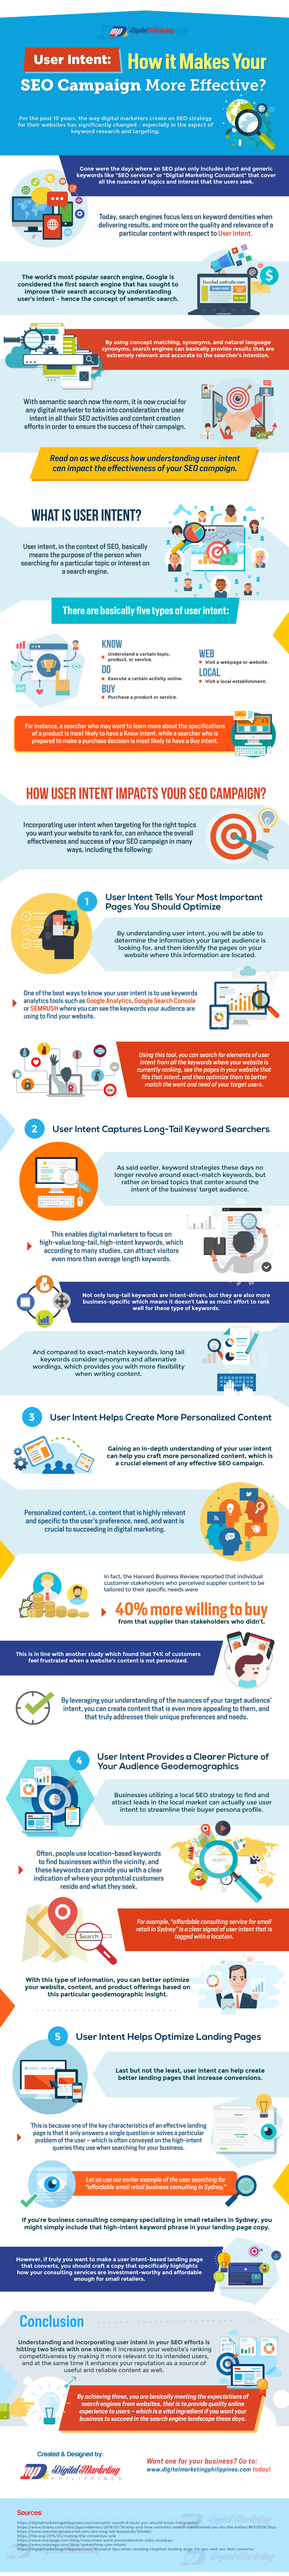 With Semantic Search Now The Norm It Is Now Crucial For Any Digital Marketer To Take Into Consideration In 2020 Content Marketing Infographic Social Media Infographic